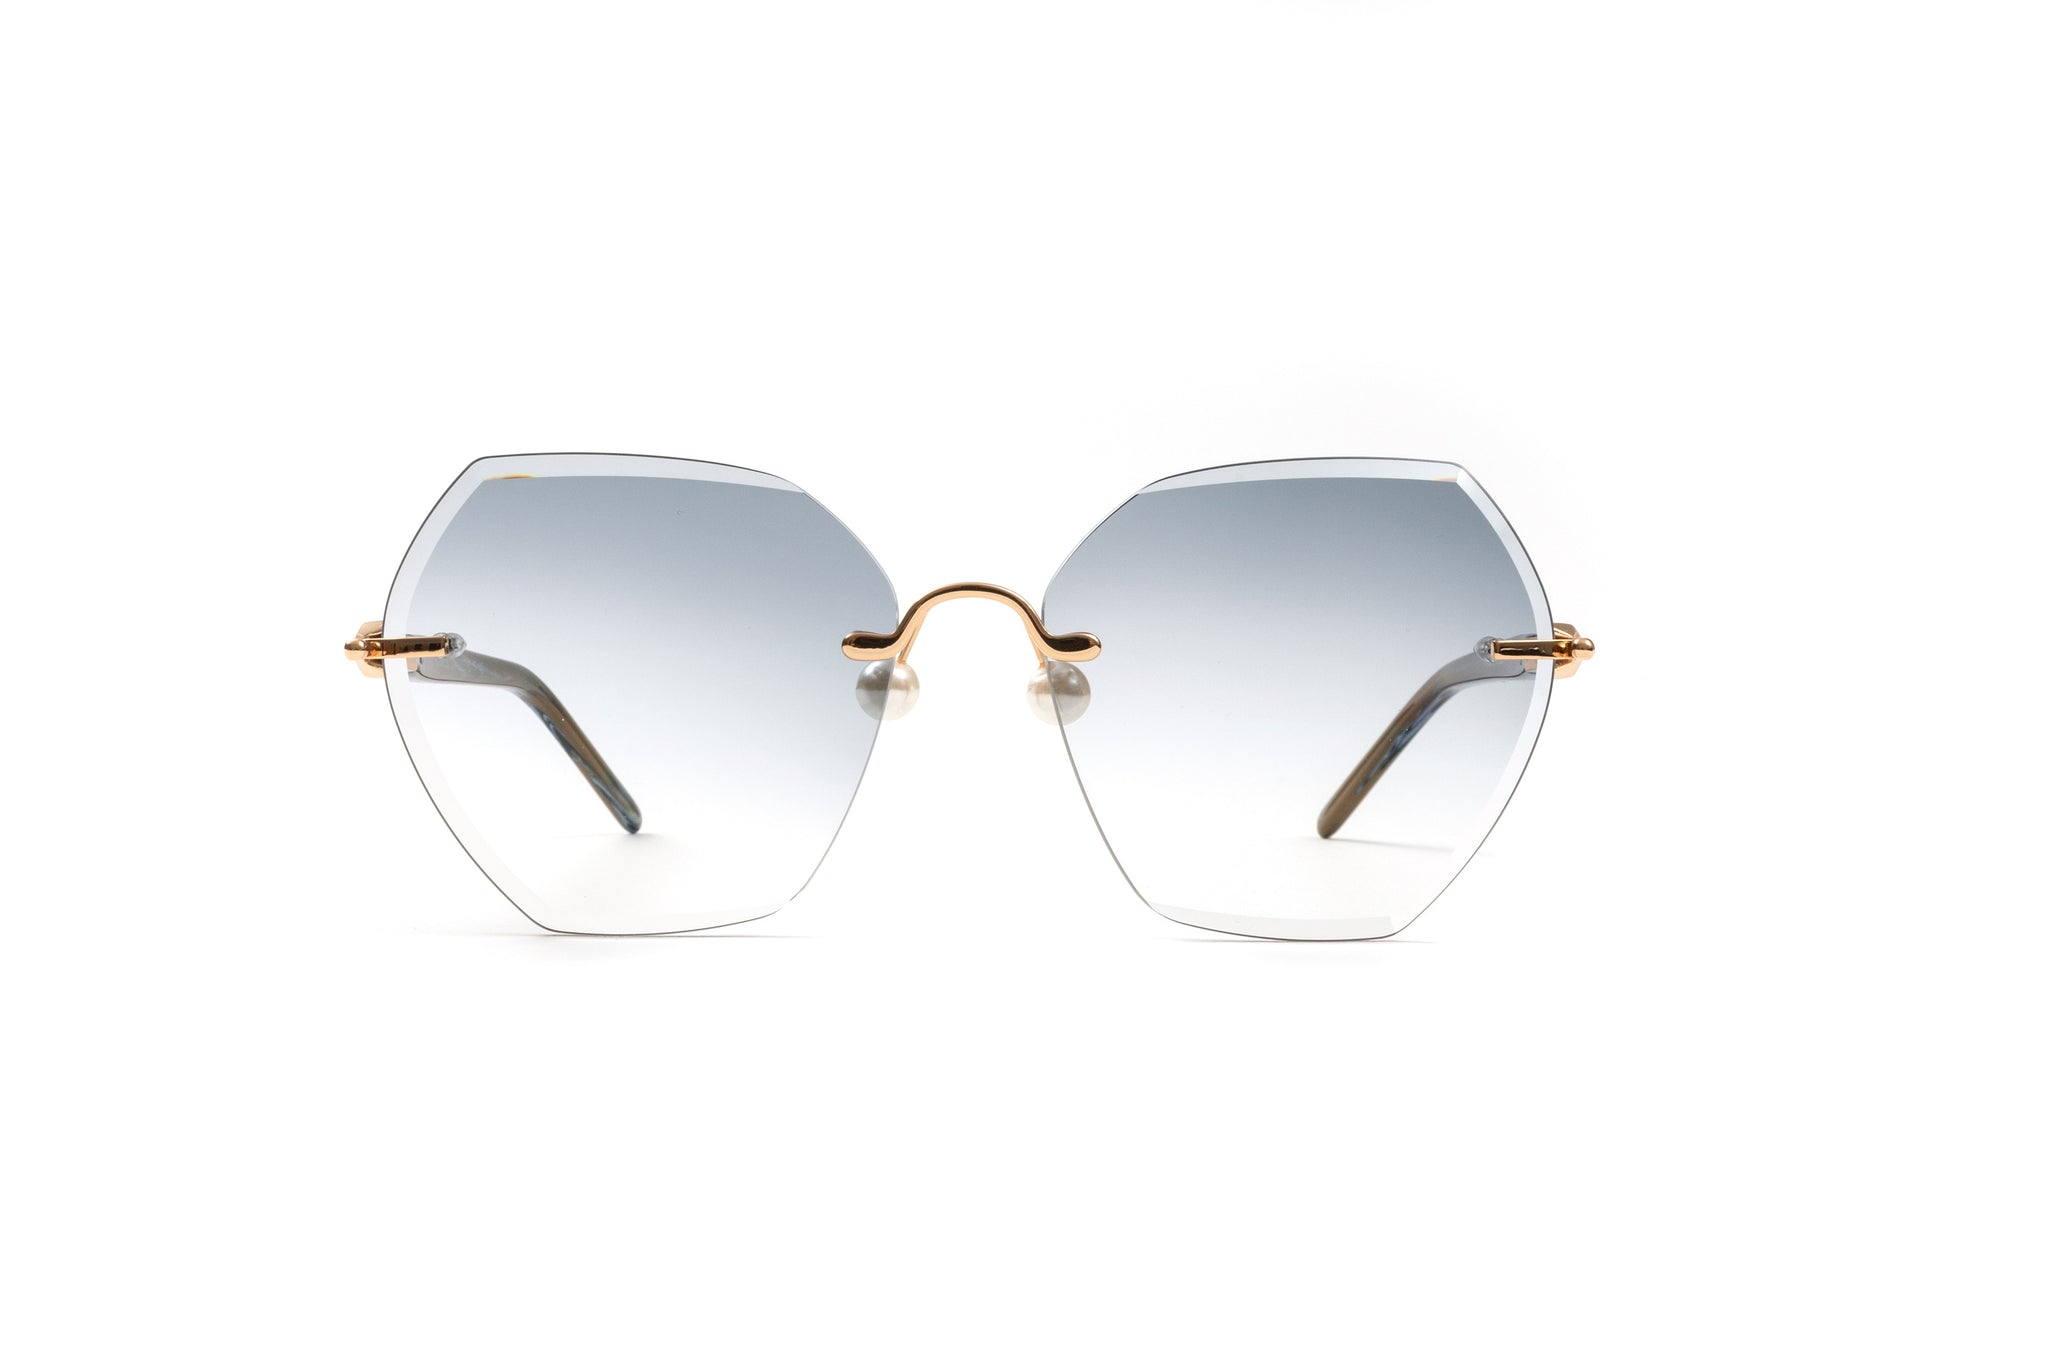 Hexagon 18kt Gold Pearl Collection Sunglasses, Brown and Blue Acetate